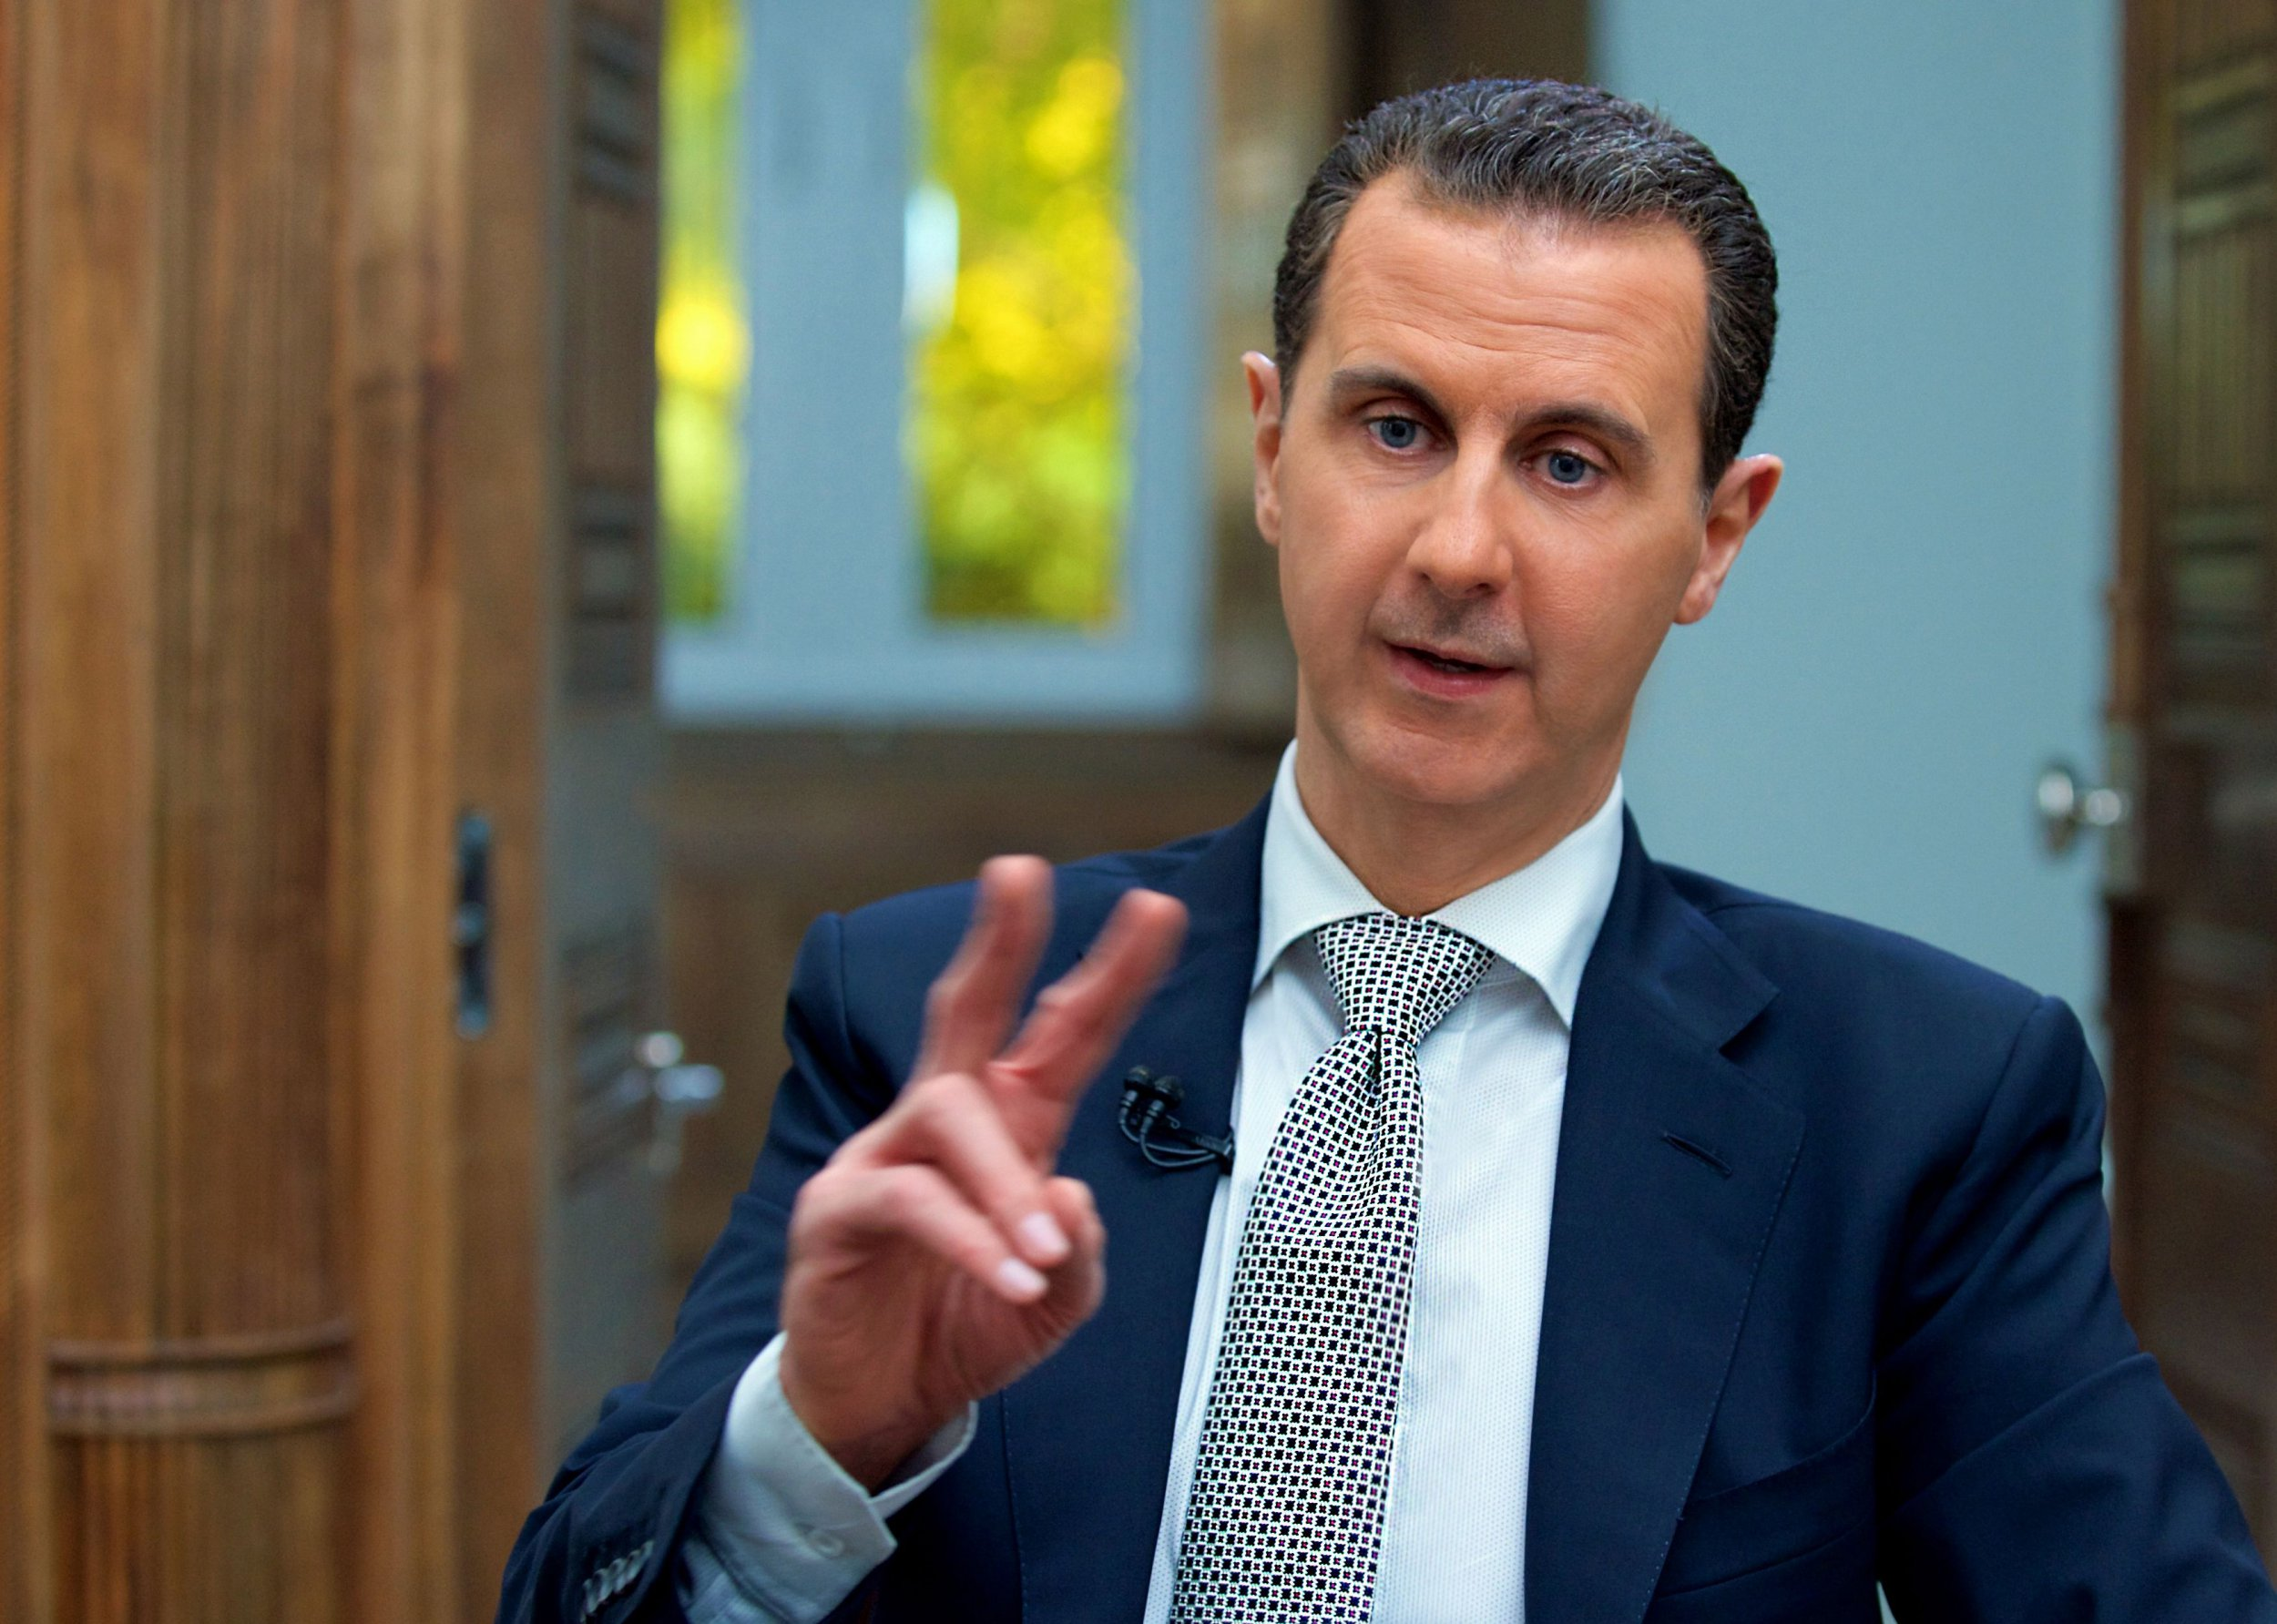 Assad claims chemical attack was '100% fabricated'